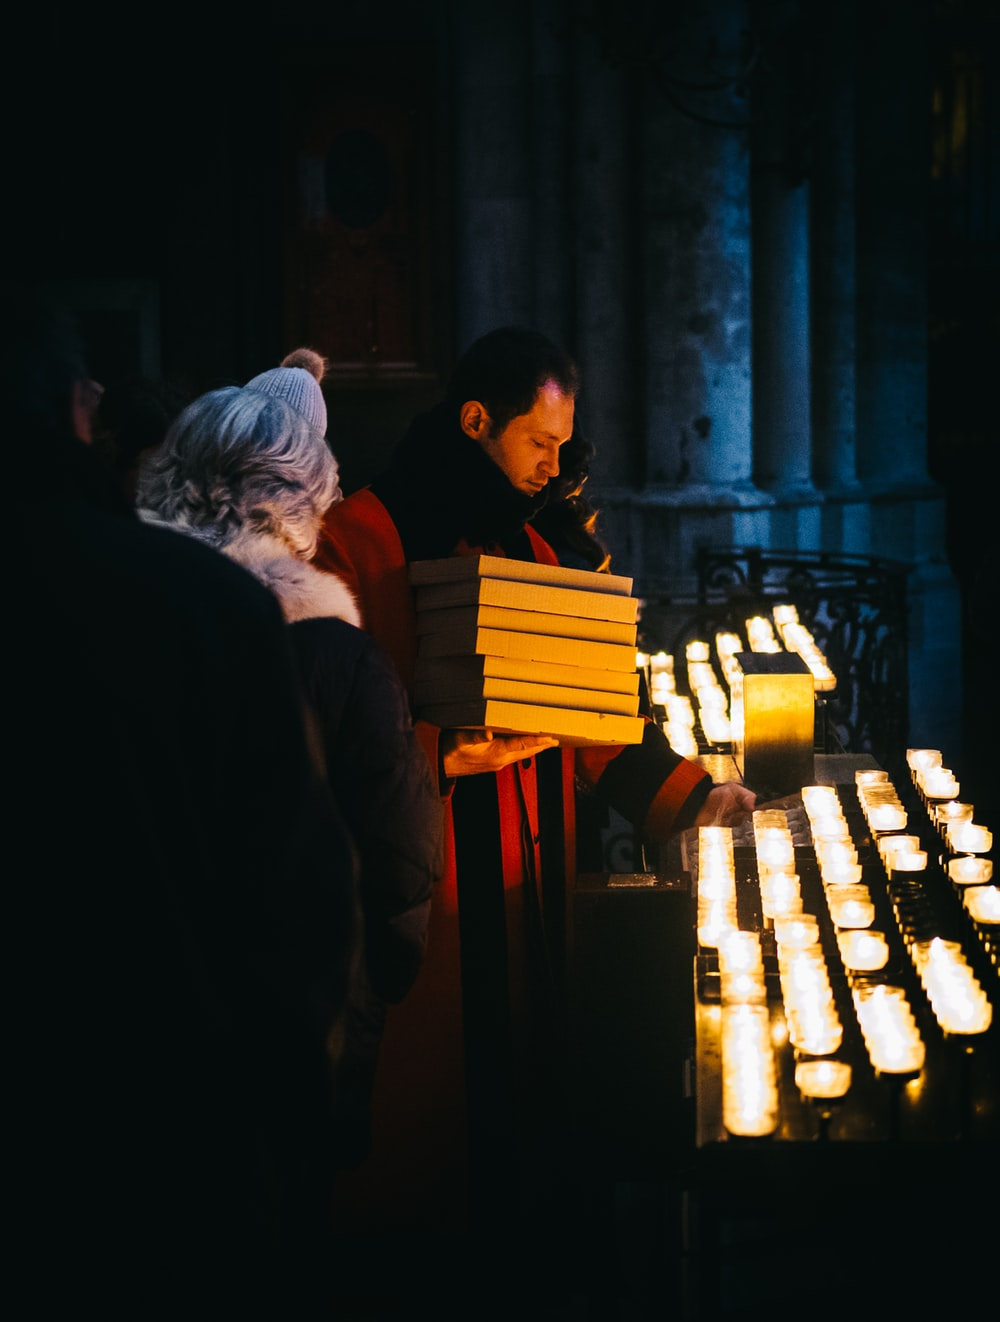 man in red coat holding white boxes holding candle